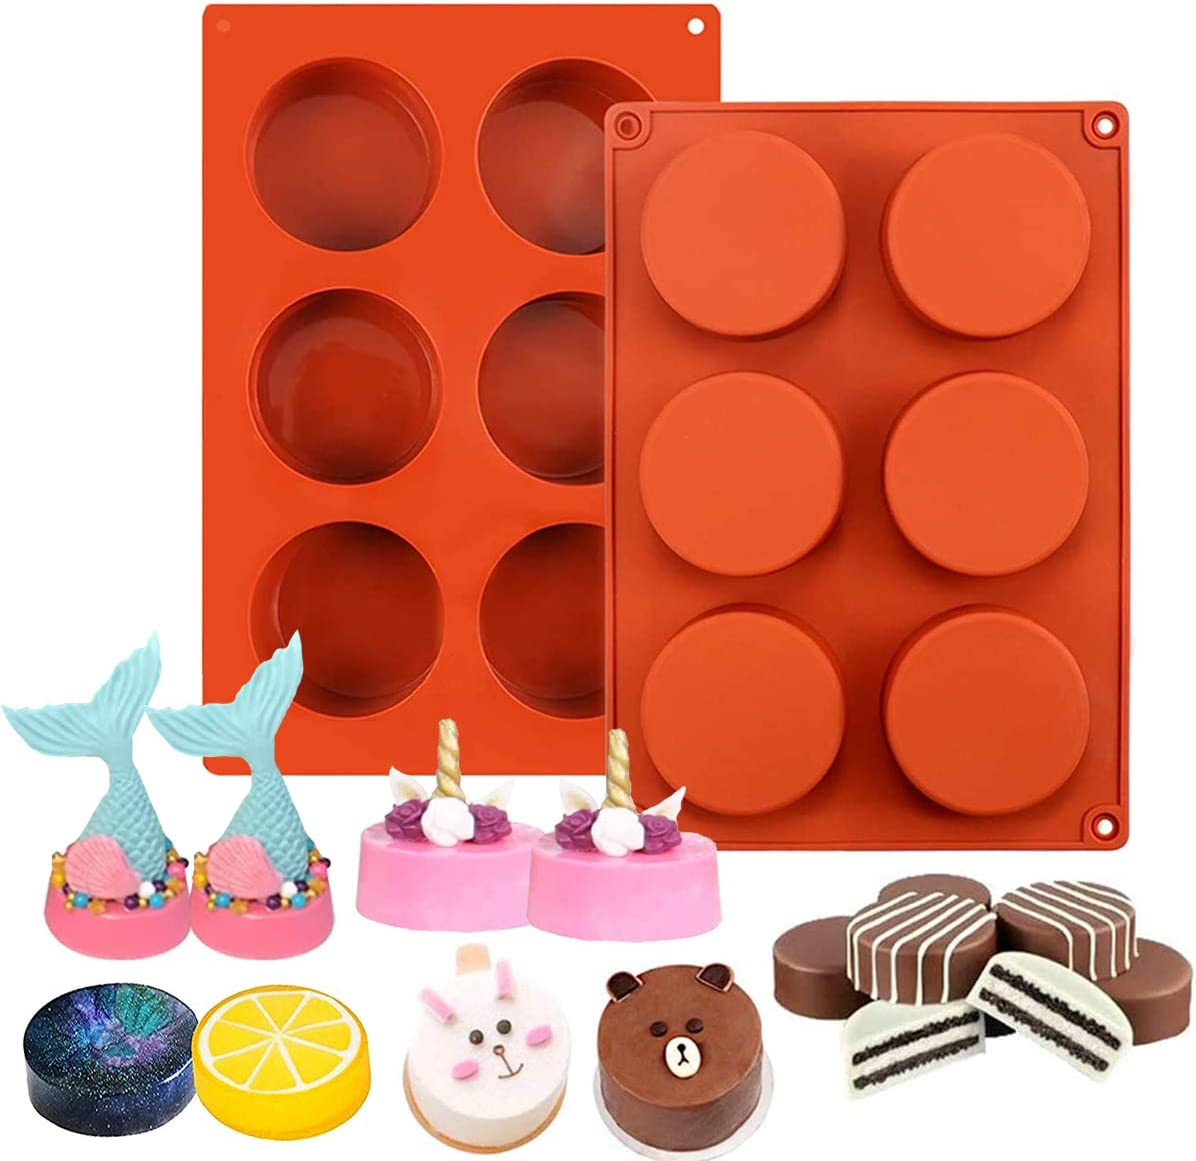 6 Holes Round Cylinder Silicone Molds for Chocolate Covered Cookie,Silicone Baking Mold for Sandwich Cookies Muffin Cupcake Brownie Cake Pudding Jello Soap - 2 Pack (Brown Red)